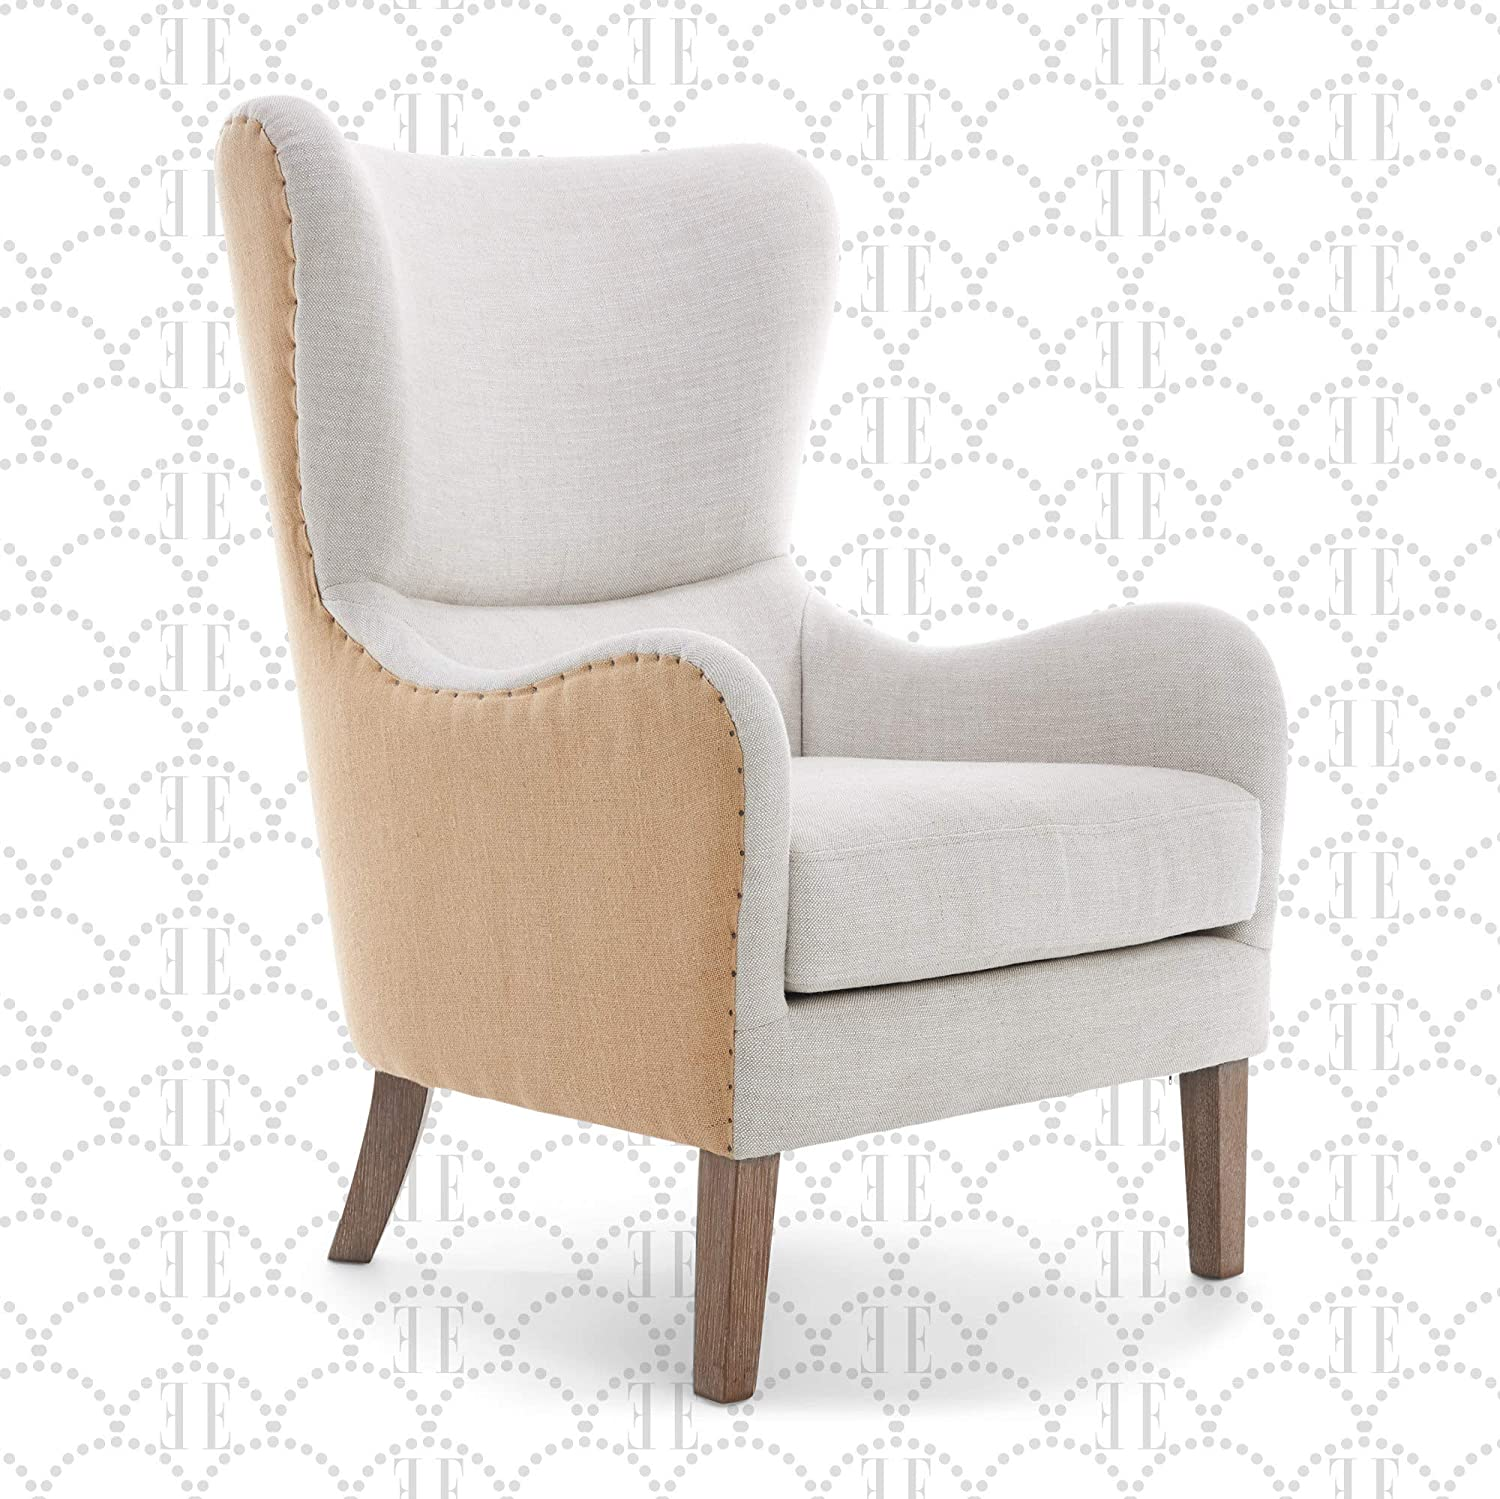 Amazon Com Elle Decor Wingback Upholstered Accent Chair Farmhouse Armchair For Living Room Two Toned Beige Furniture Decor